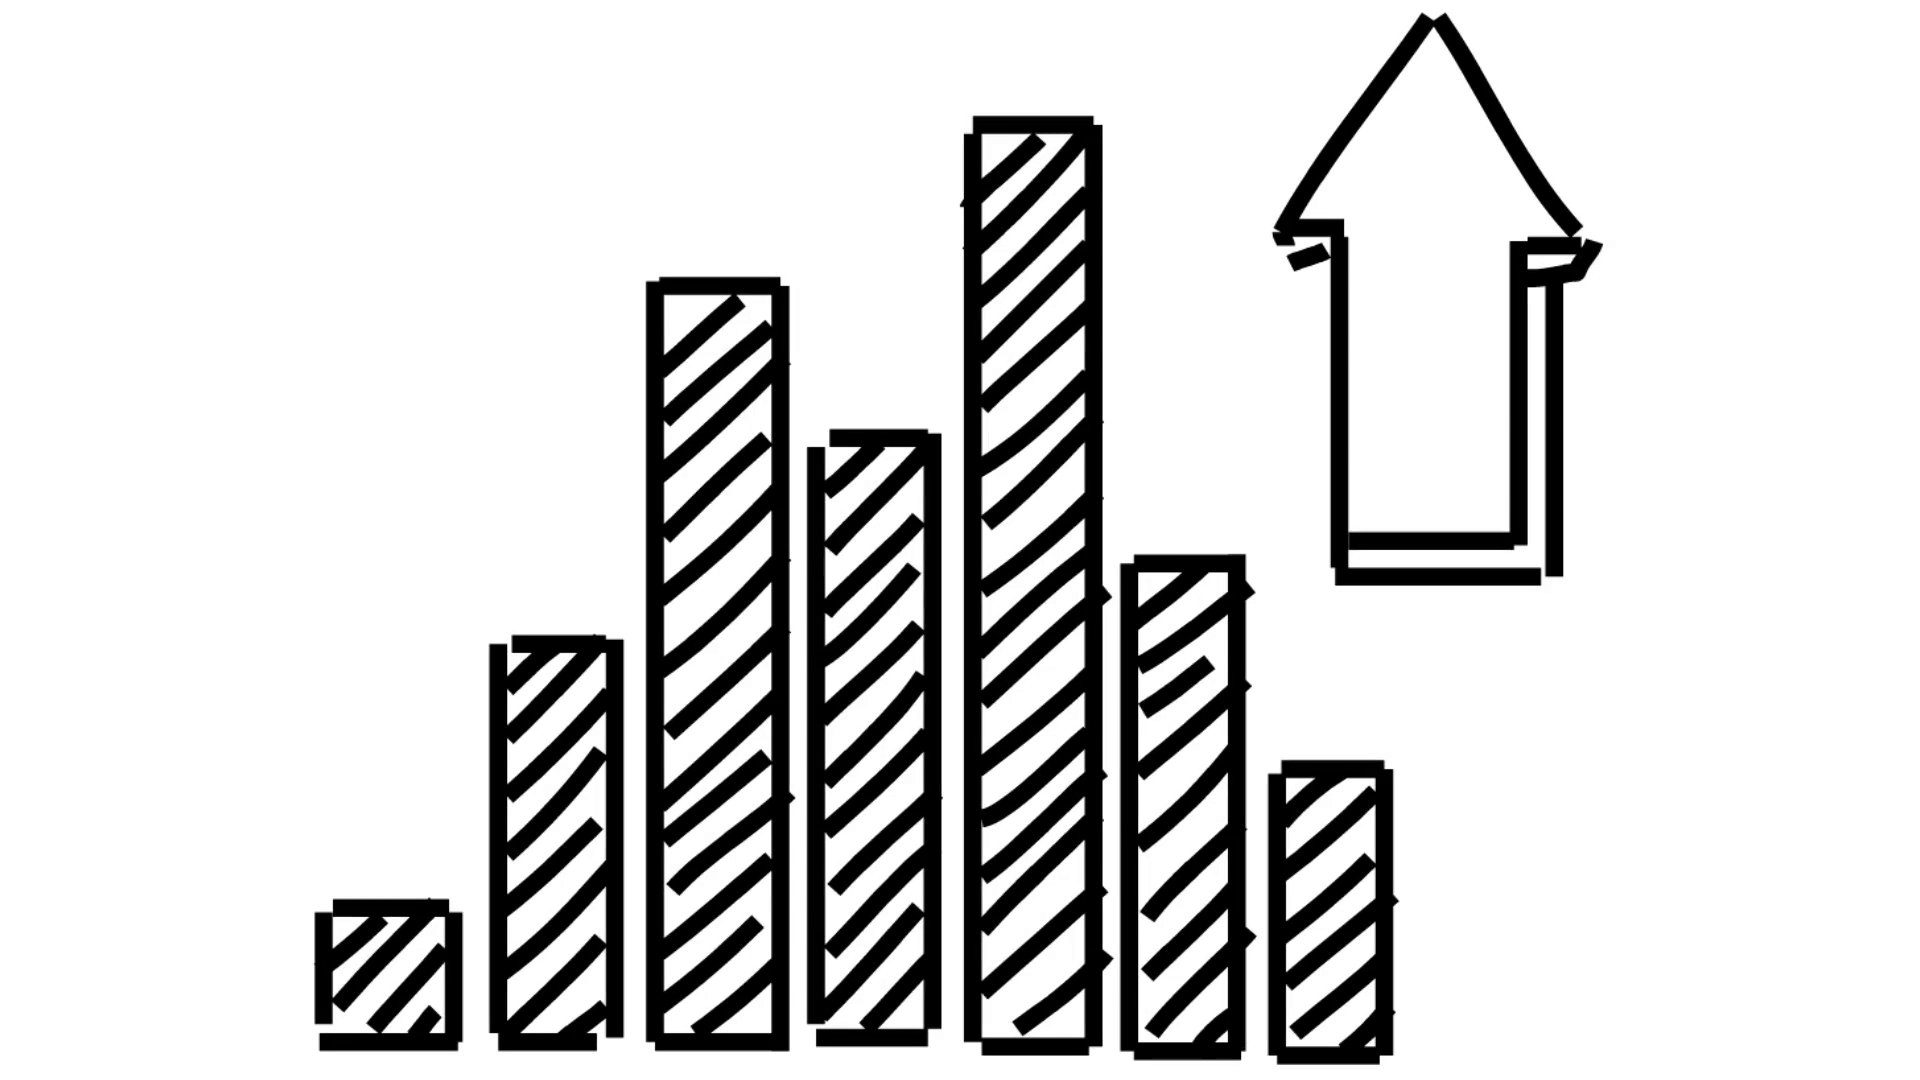 Bars drawing illustration animation. Graph clipart transparent